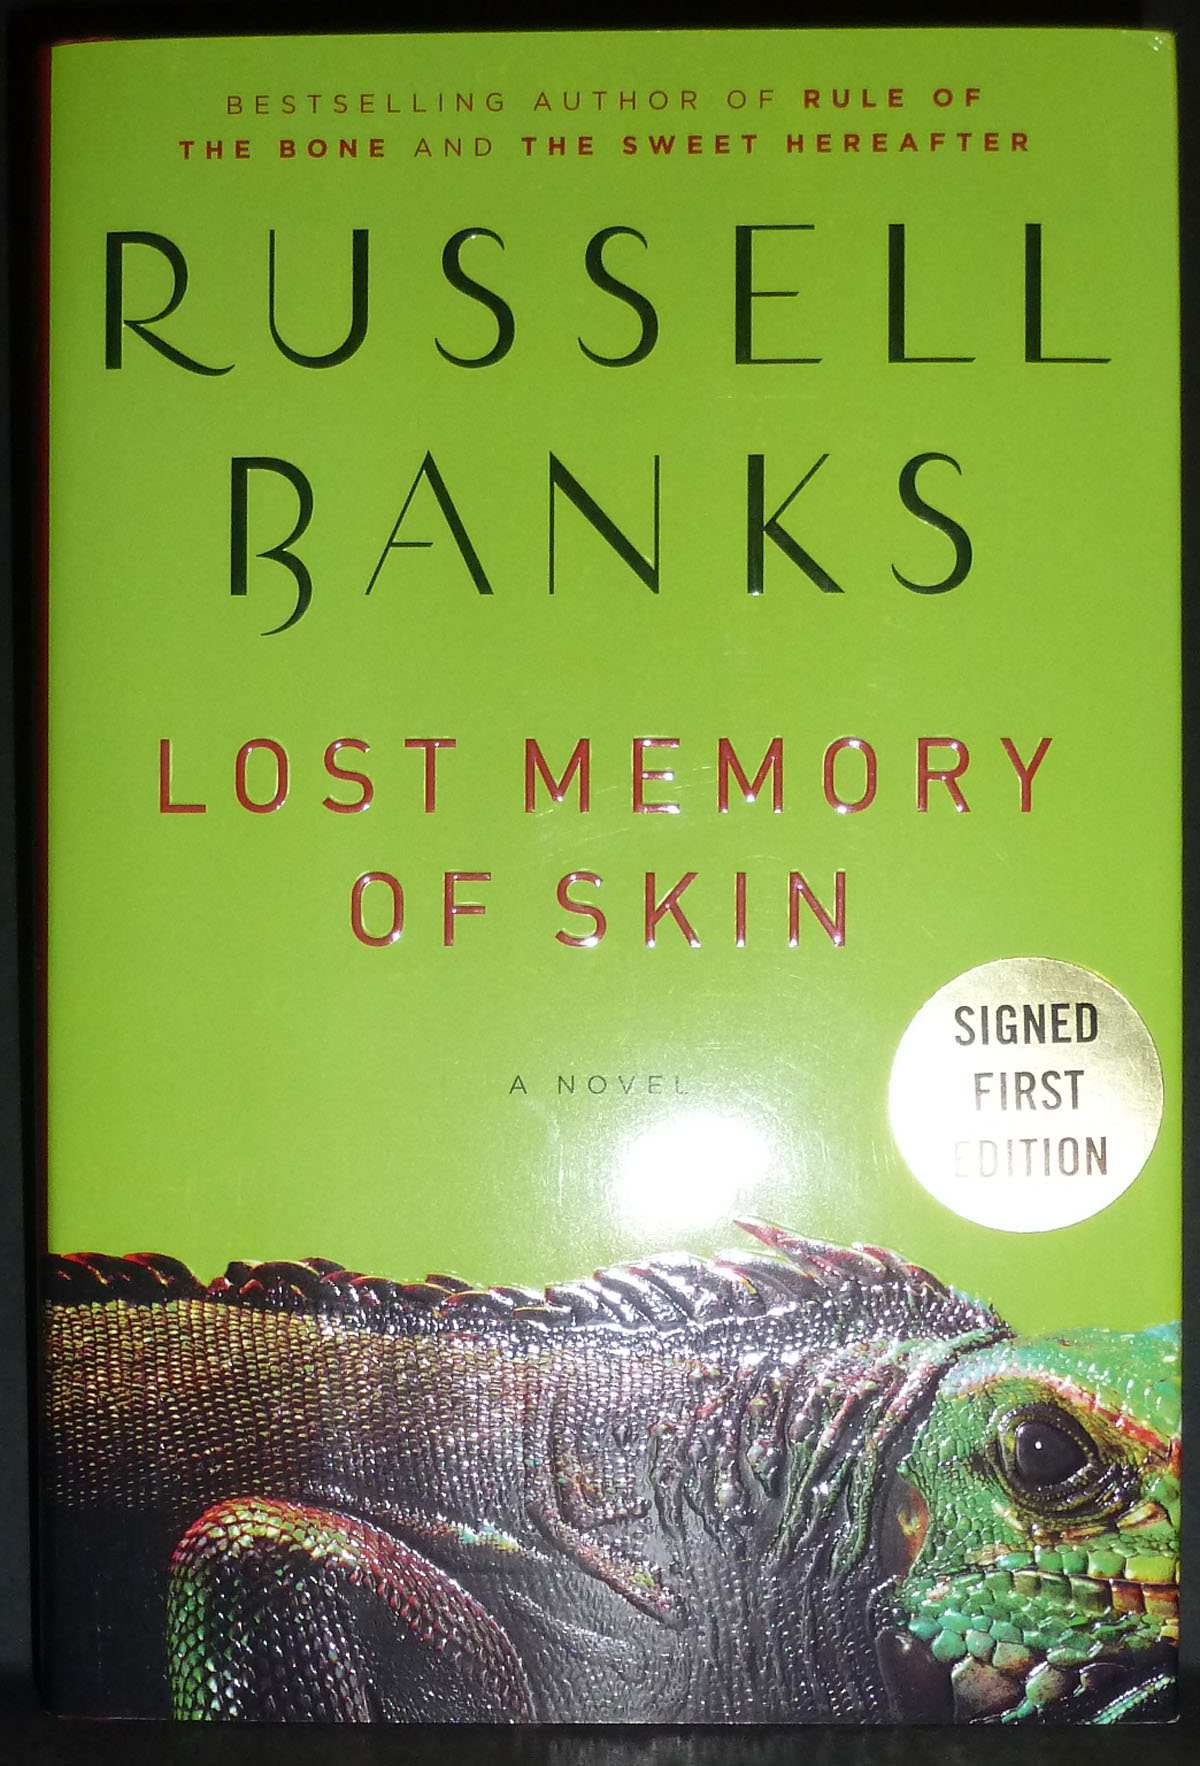 Image for Russell Banks - Signed 1st edition - Lost Memory of Skin